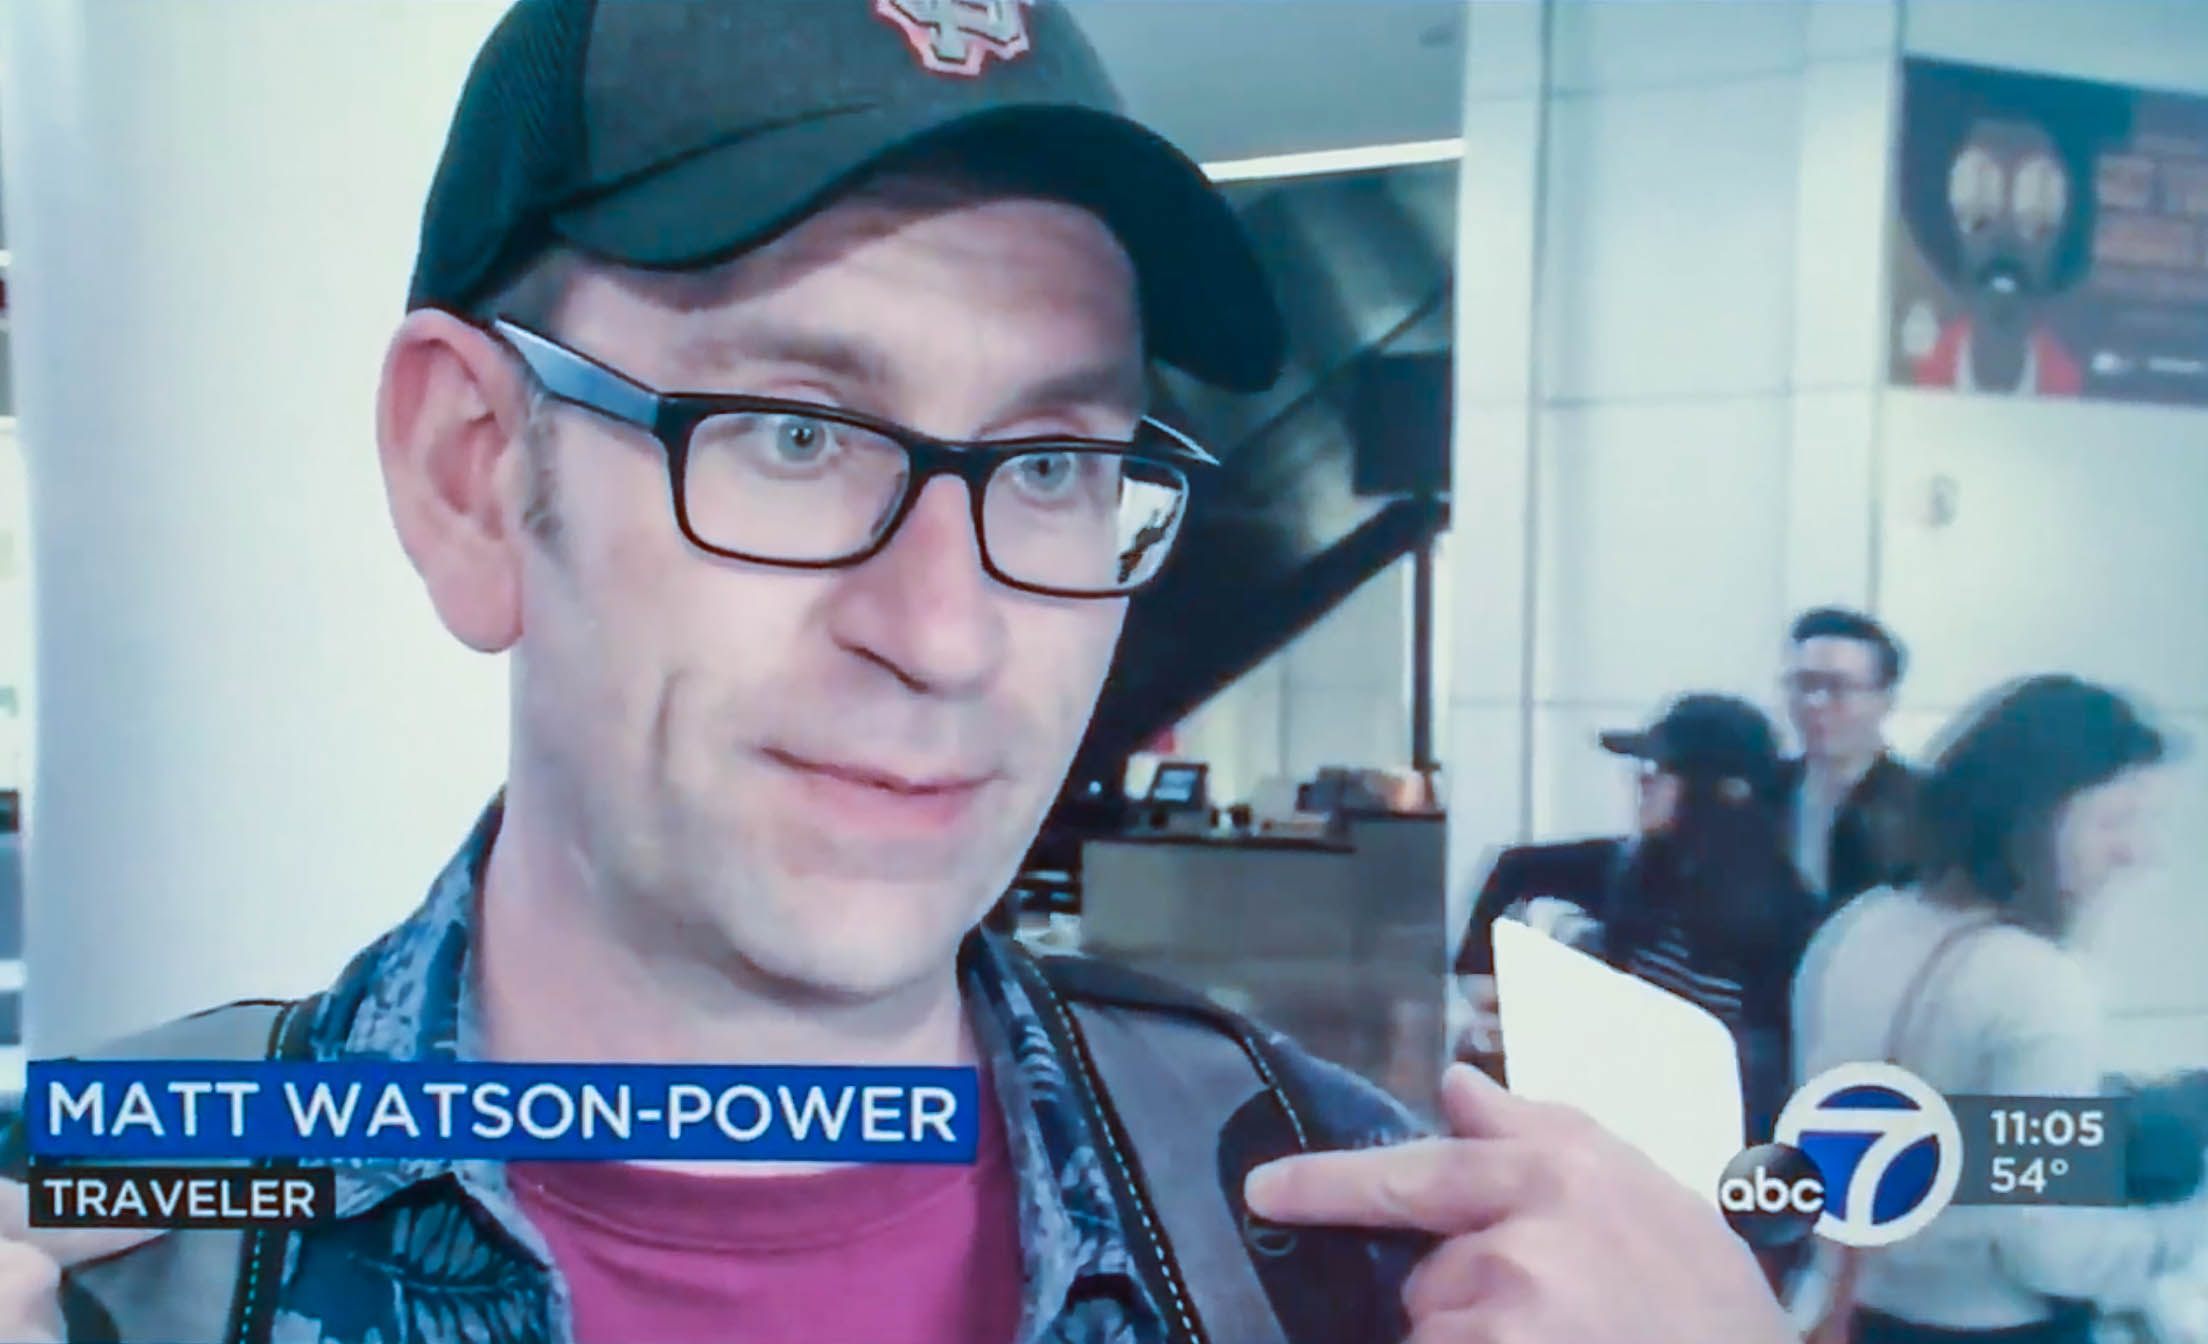 Matt Watson-Power on ABC News